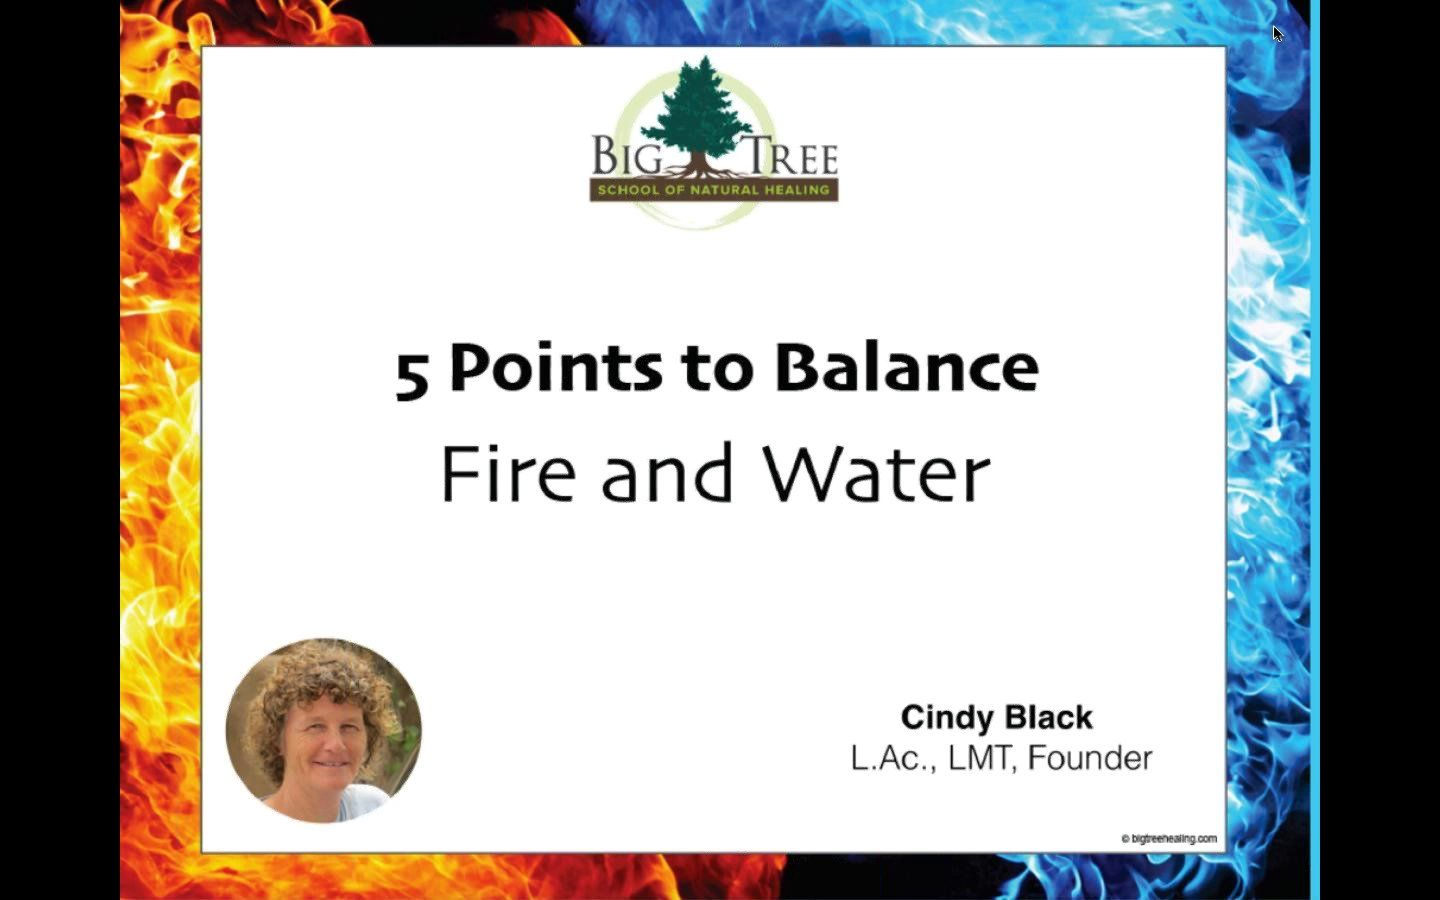 5 Points to Balance Fire and Water